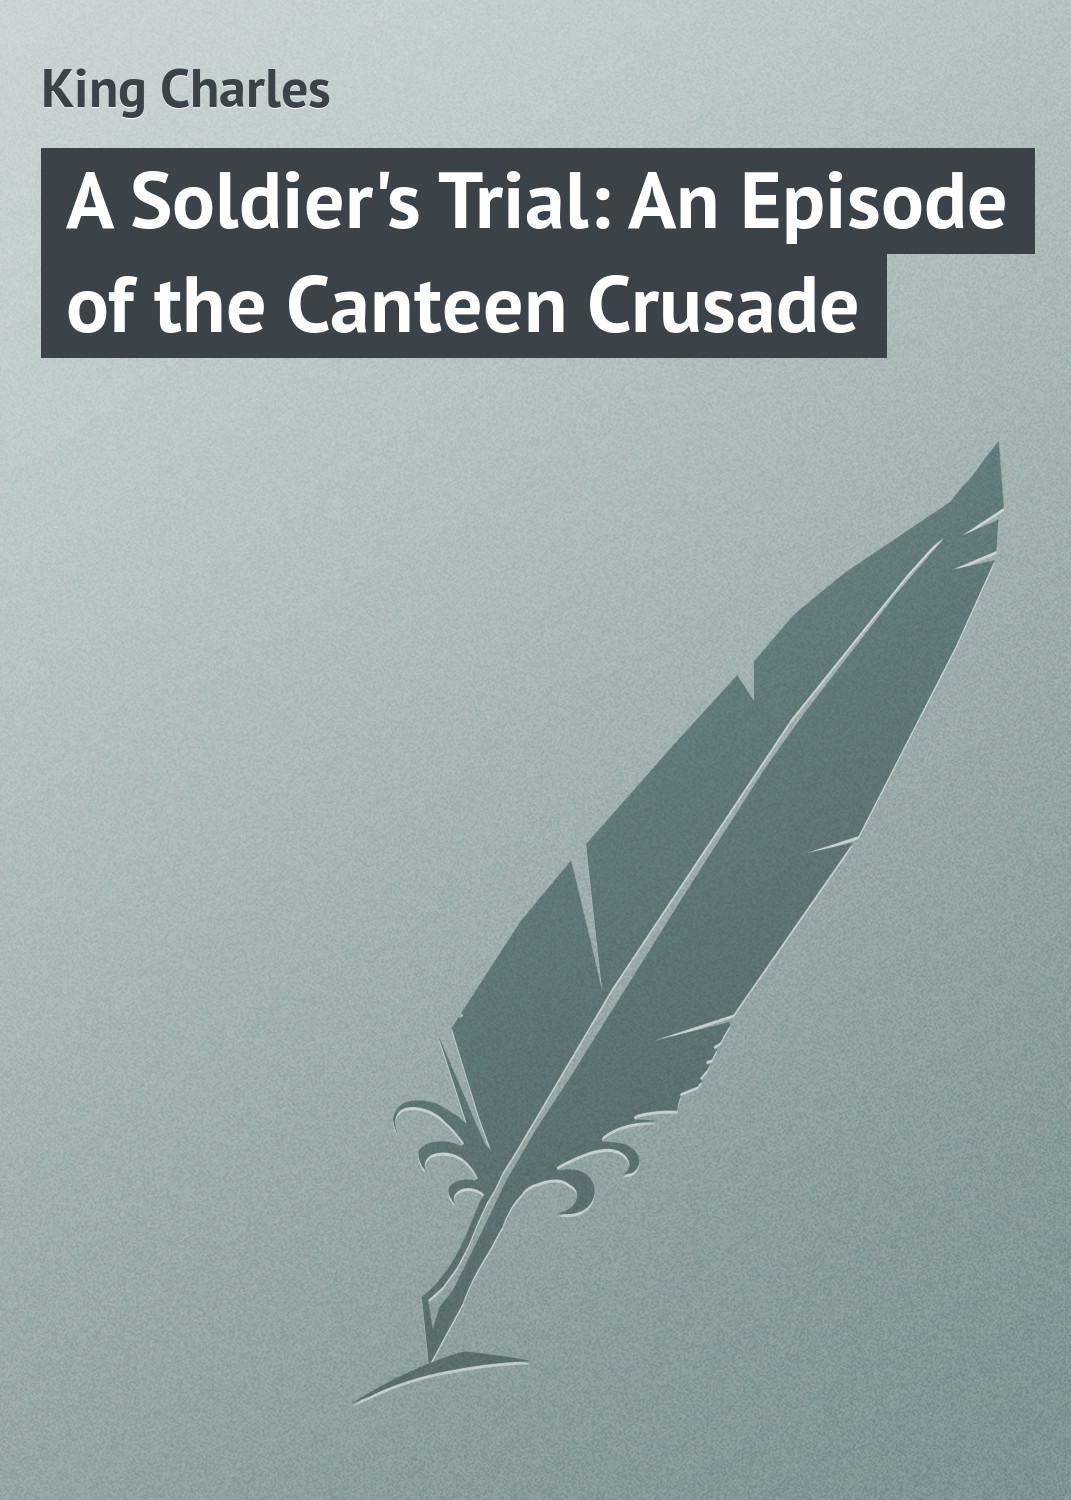 King Charles A Soldier's Trial: An Episode of the Canteen Crusade king charles a soldier s trial an episode of the canteen crusade